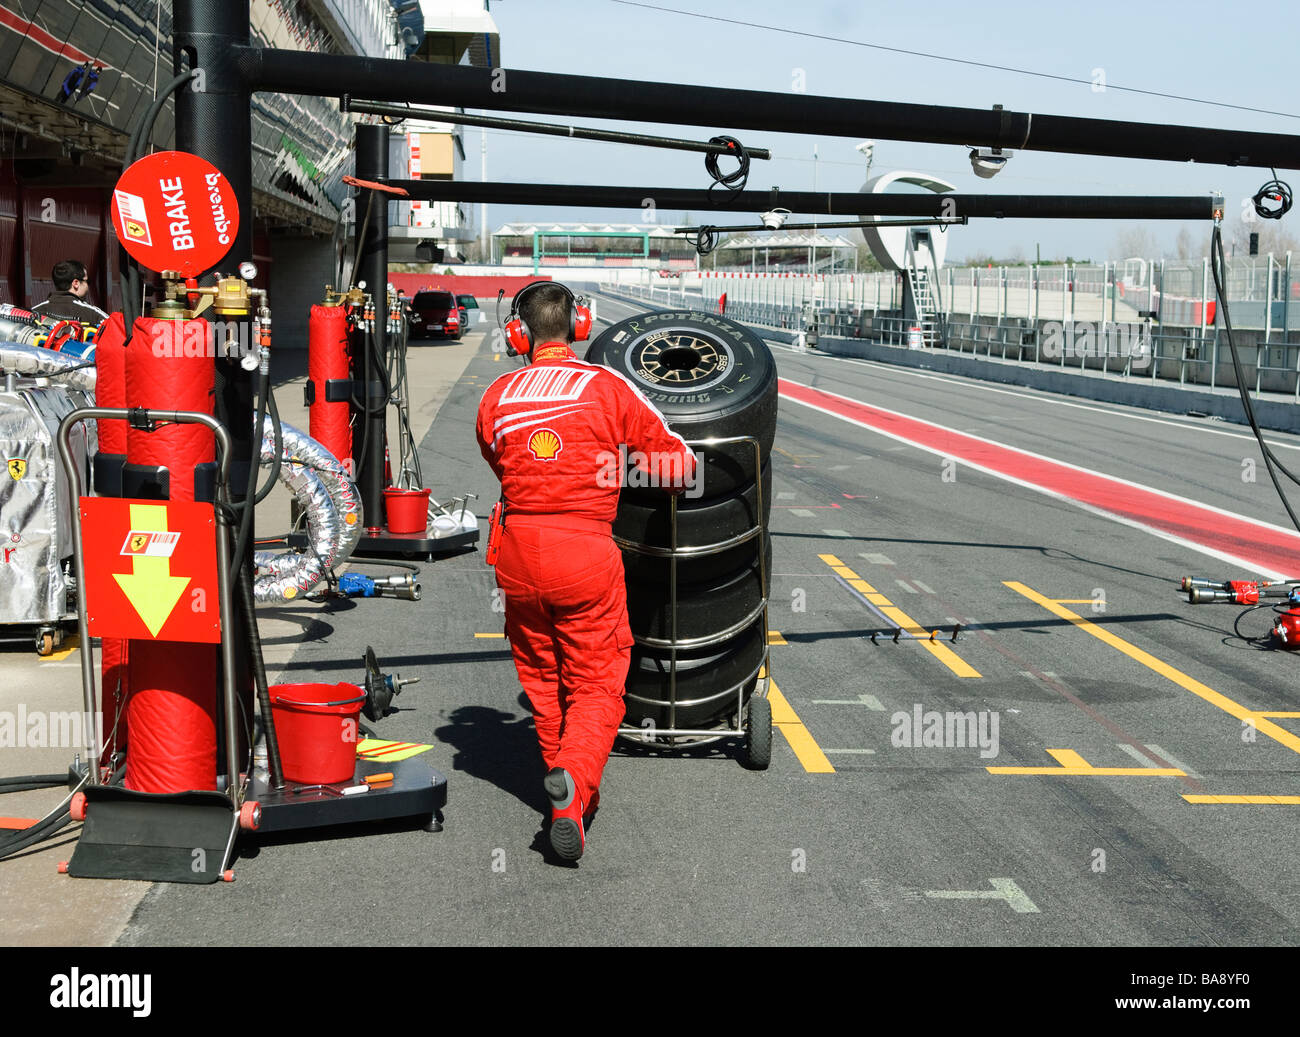 Ferrari mechanic puhes stack of race tyres along pit lane at racetrack at Formula One testing sessions - Stock Image